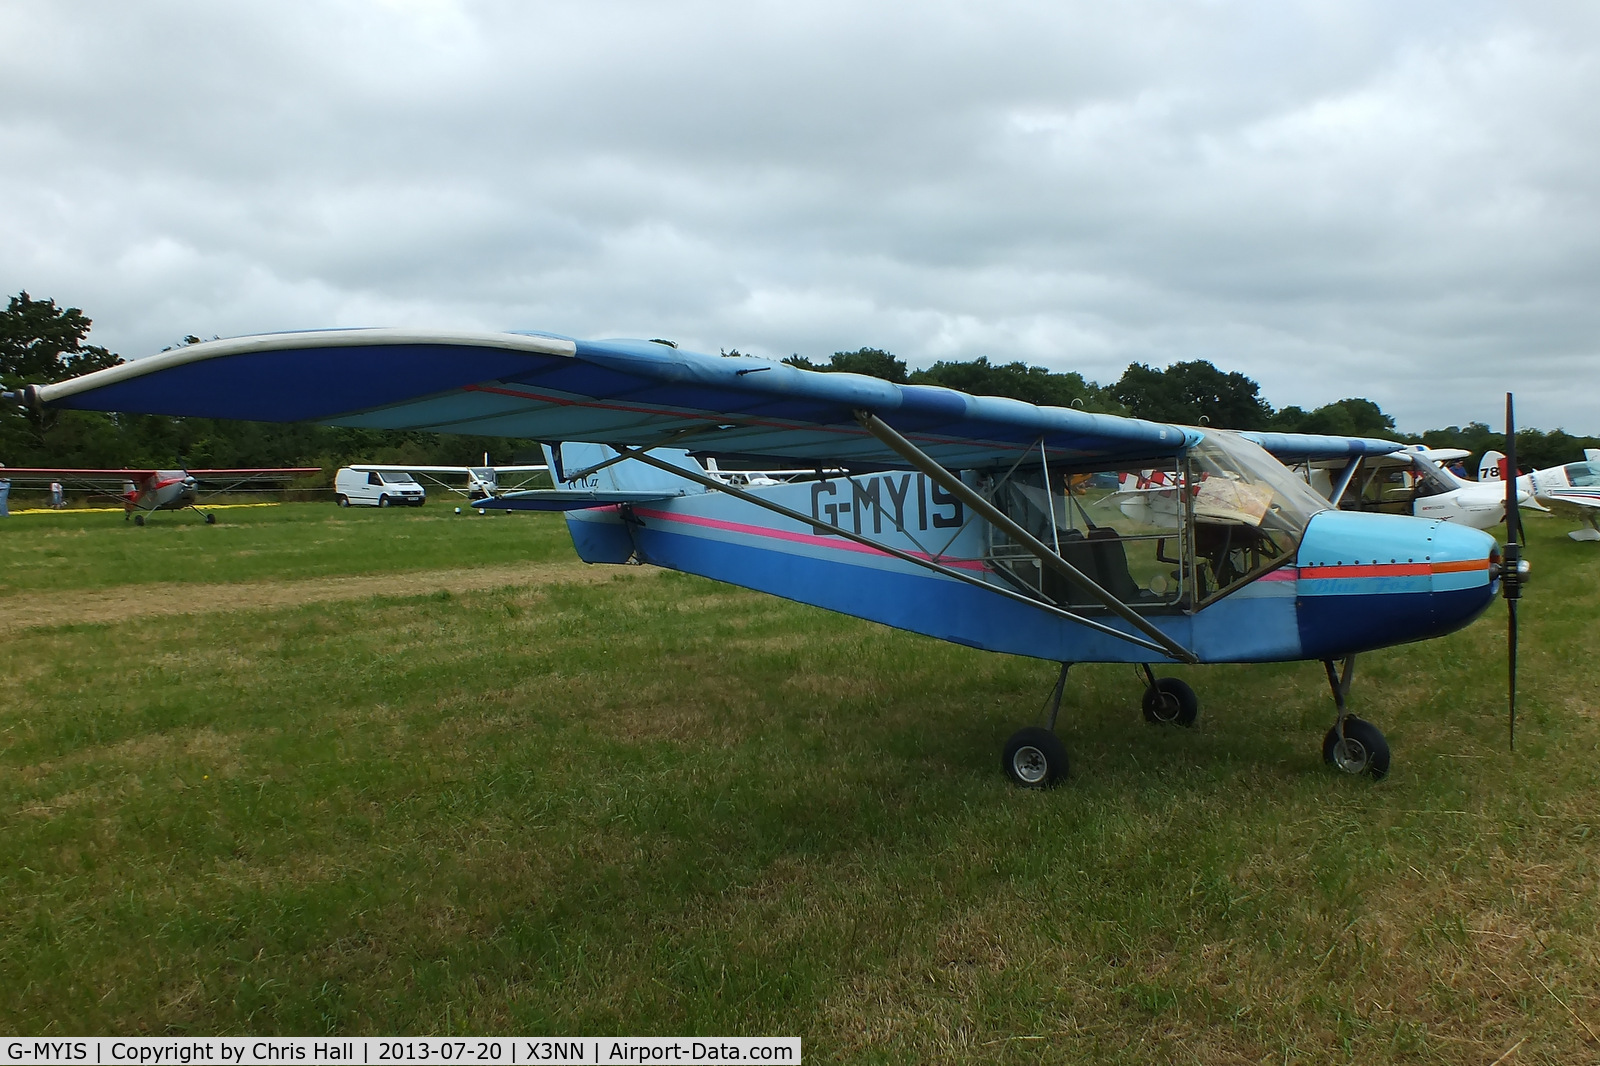 G-MYIS, 1993 Rans S-6ESD Coyote II C/N PFA 204-12382, at the Stoke Golding stakeout 2013